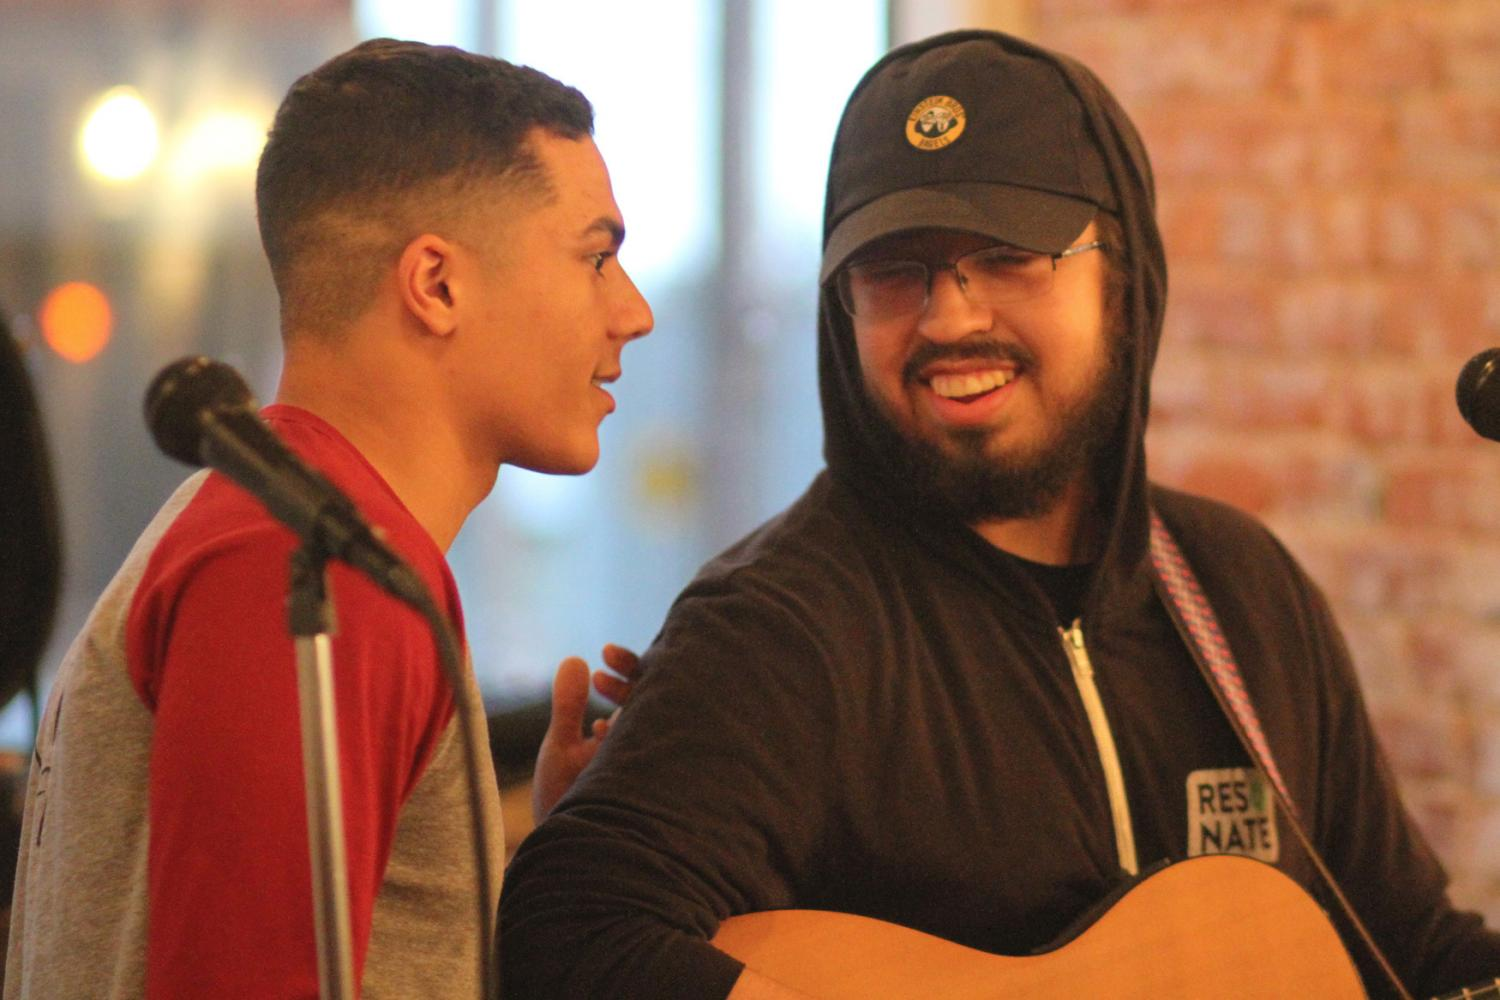 Avery Johnson (Left) and Reuben Soliz (right) performing slam poetry together at The Mason Jar's open mic night